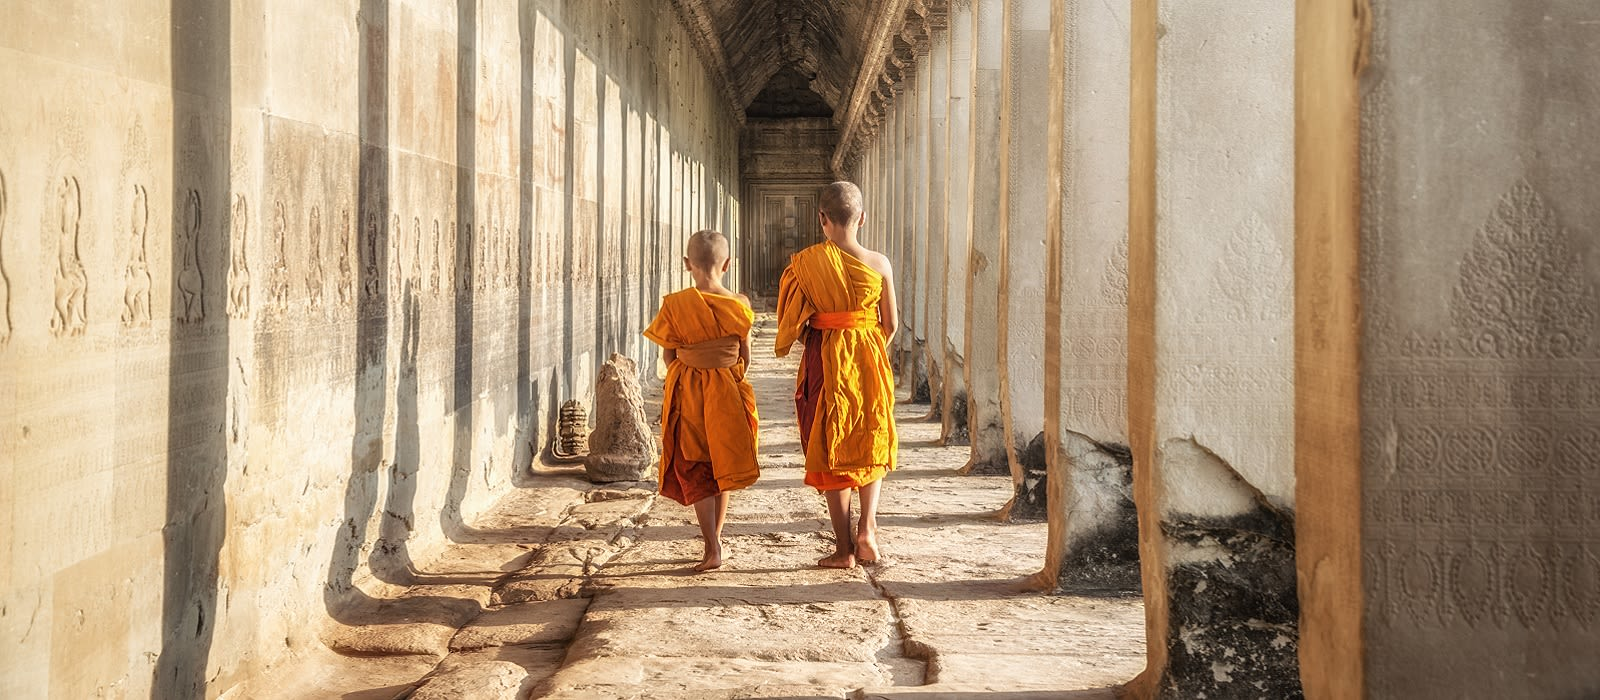 Enchanting Travels Cambodia Tours Two neophytes walking in an Angkor Wat, Siem Reap, Cambodia Vacation